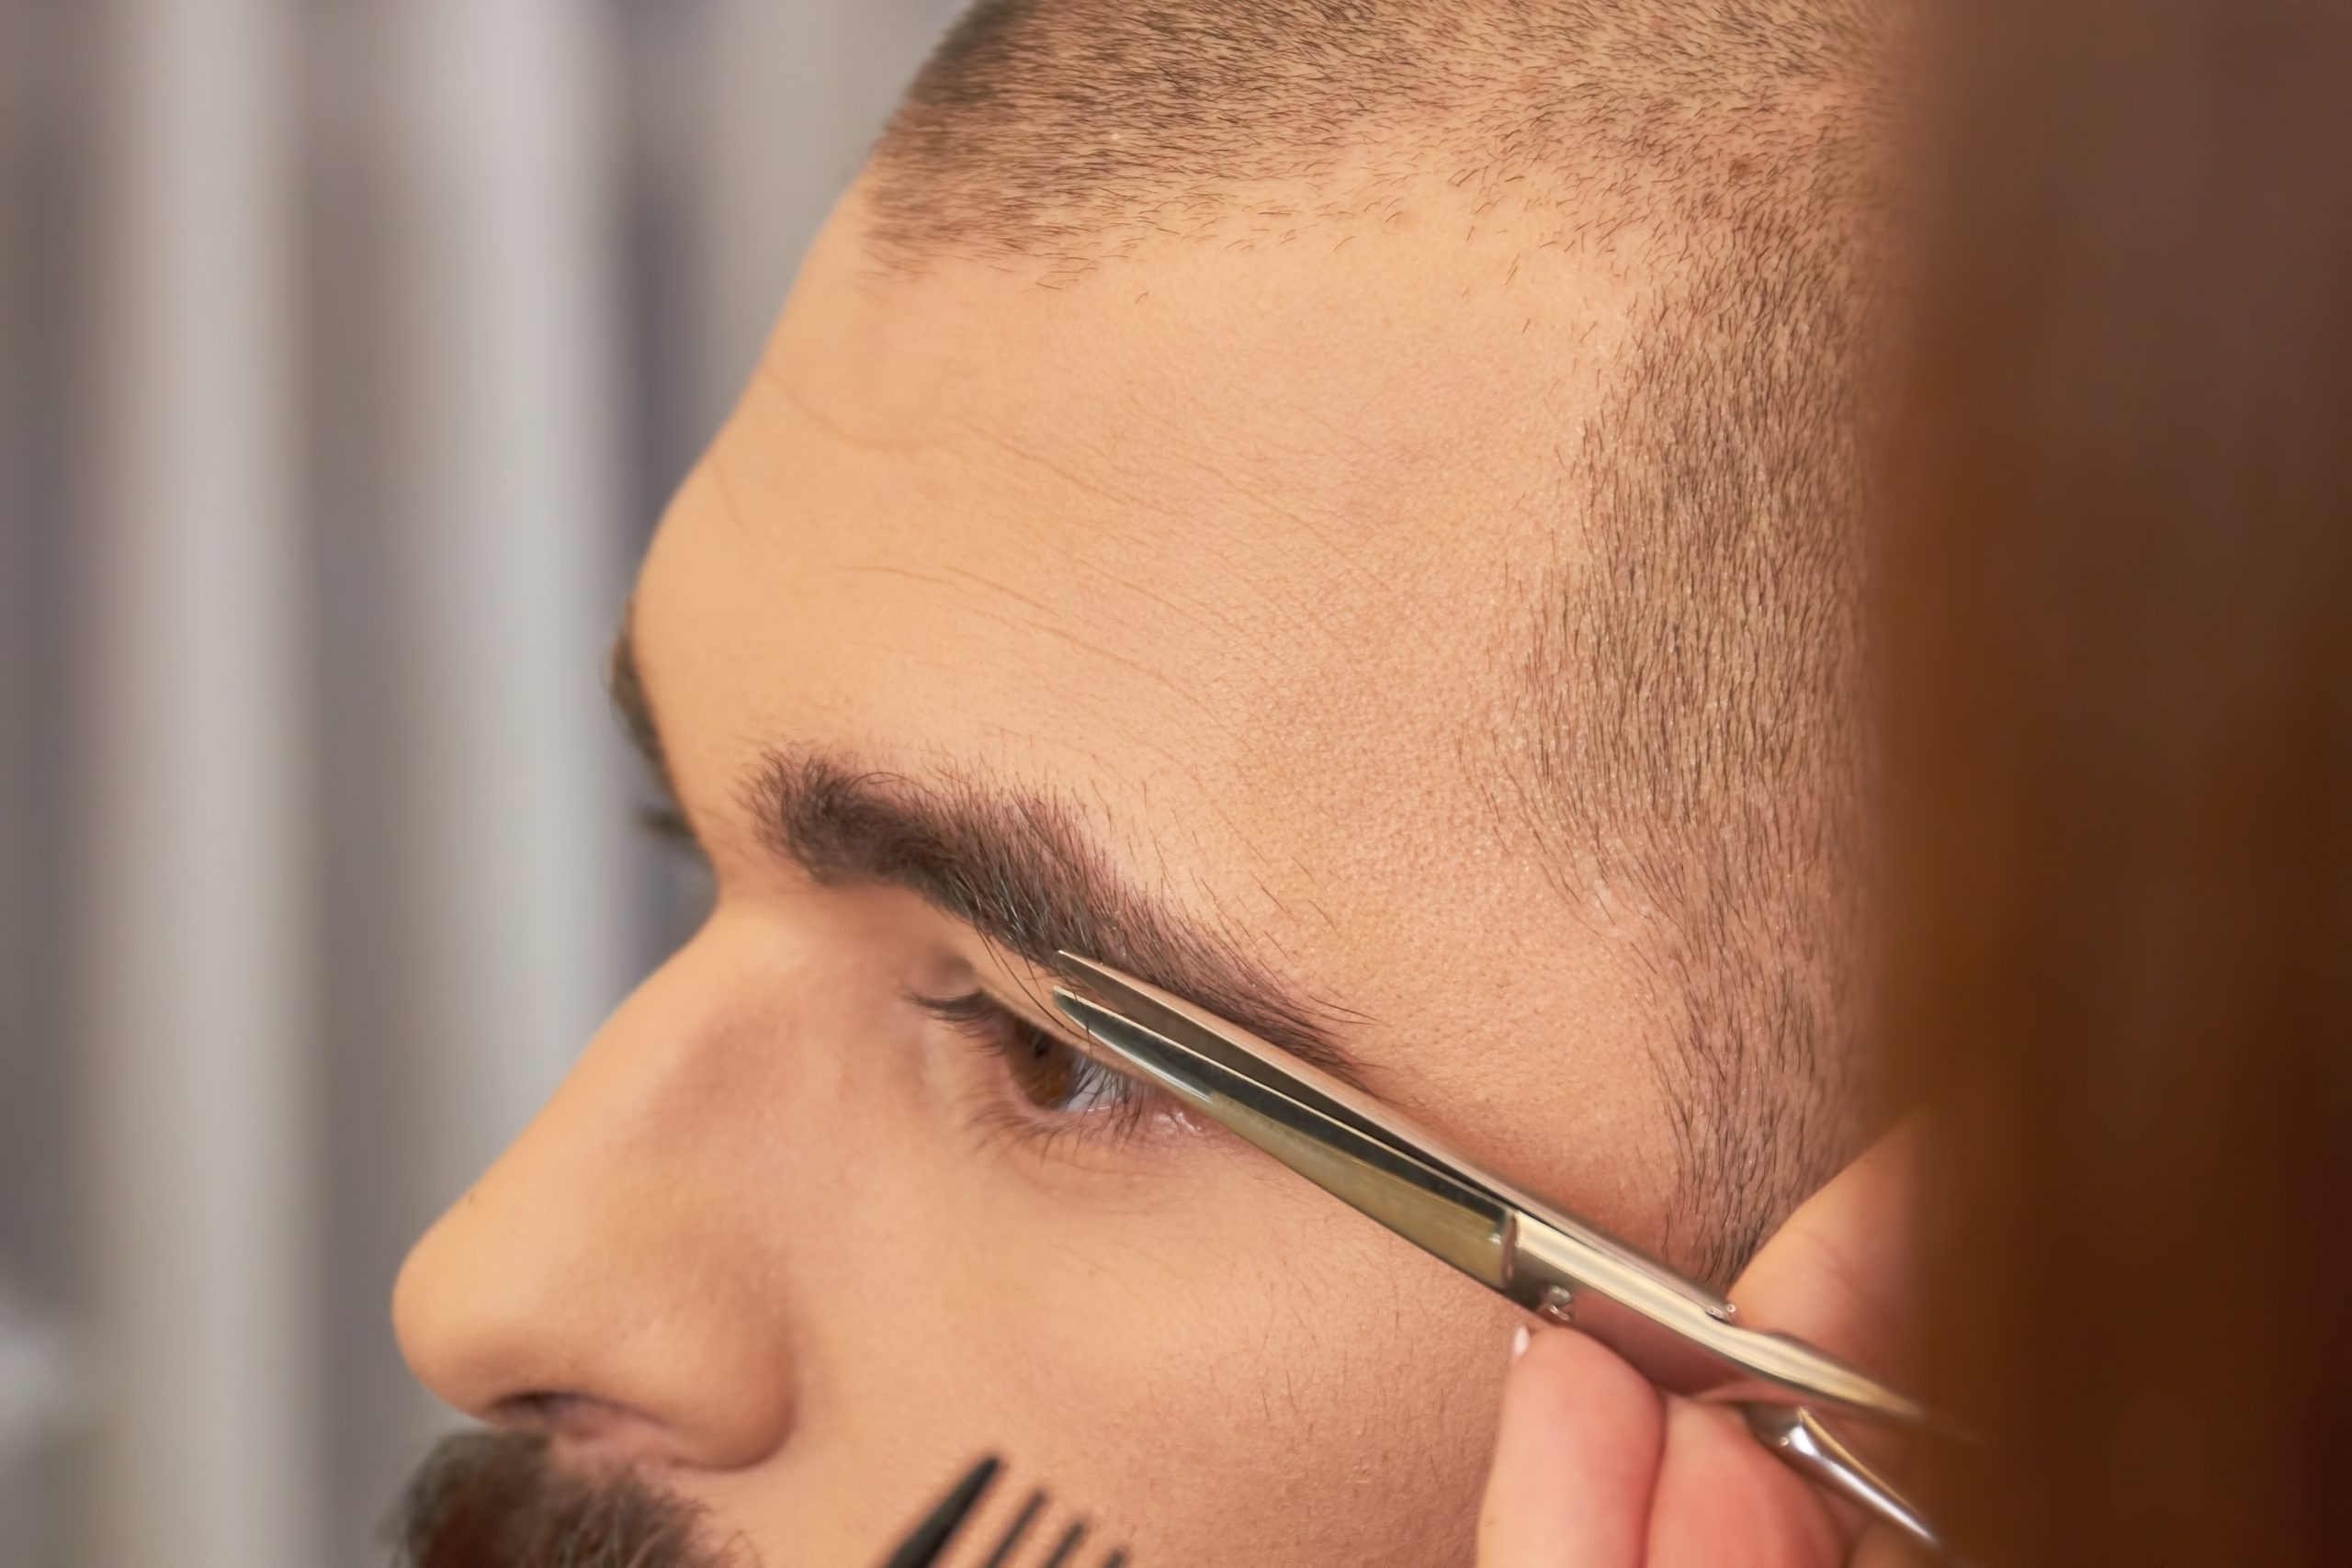 Scissors cutting eyebrow of man. Brow grooming close up.